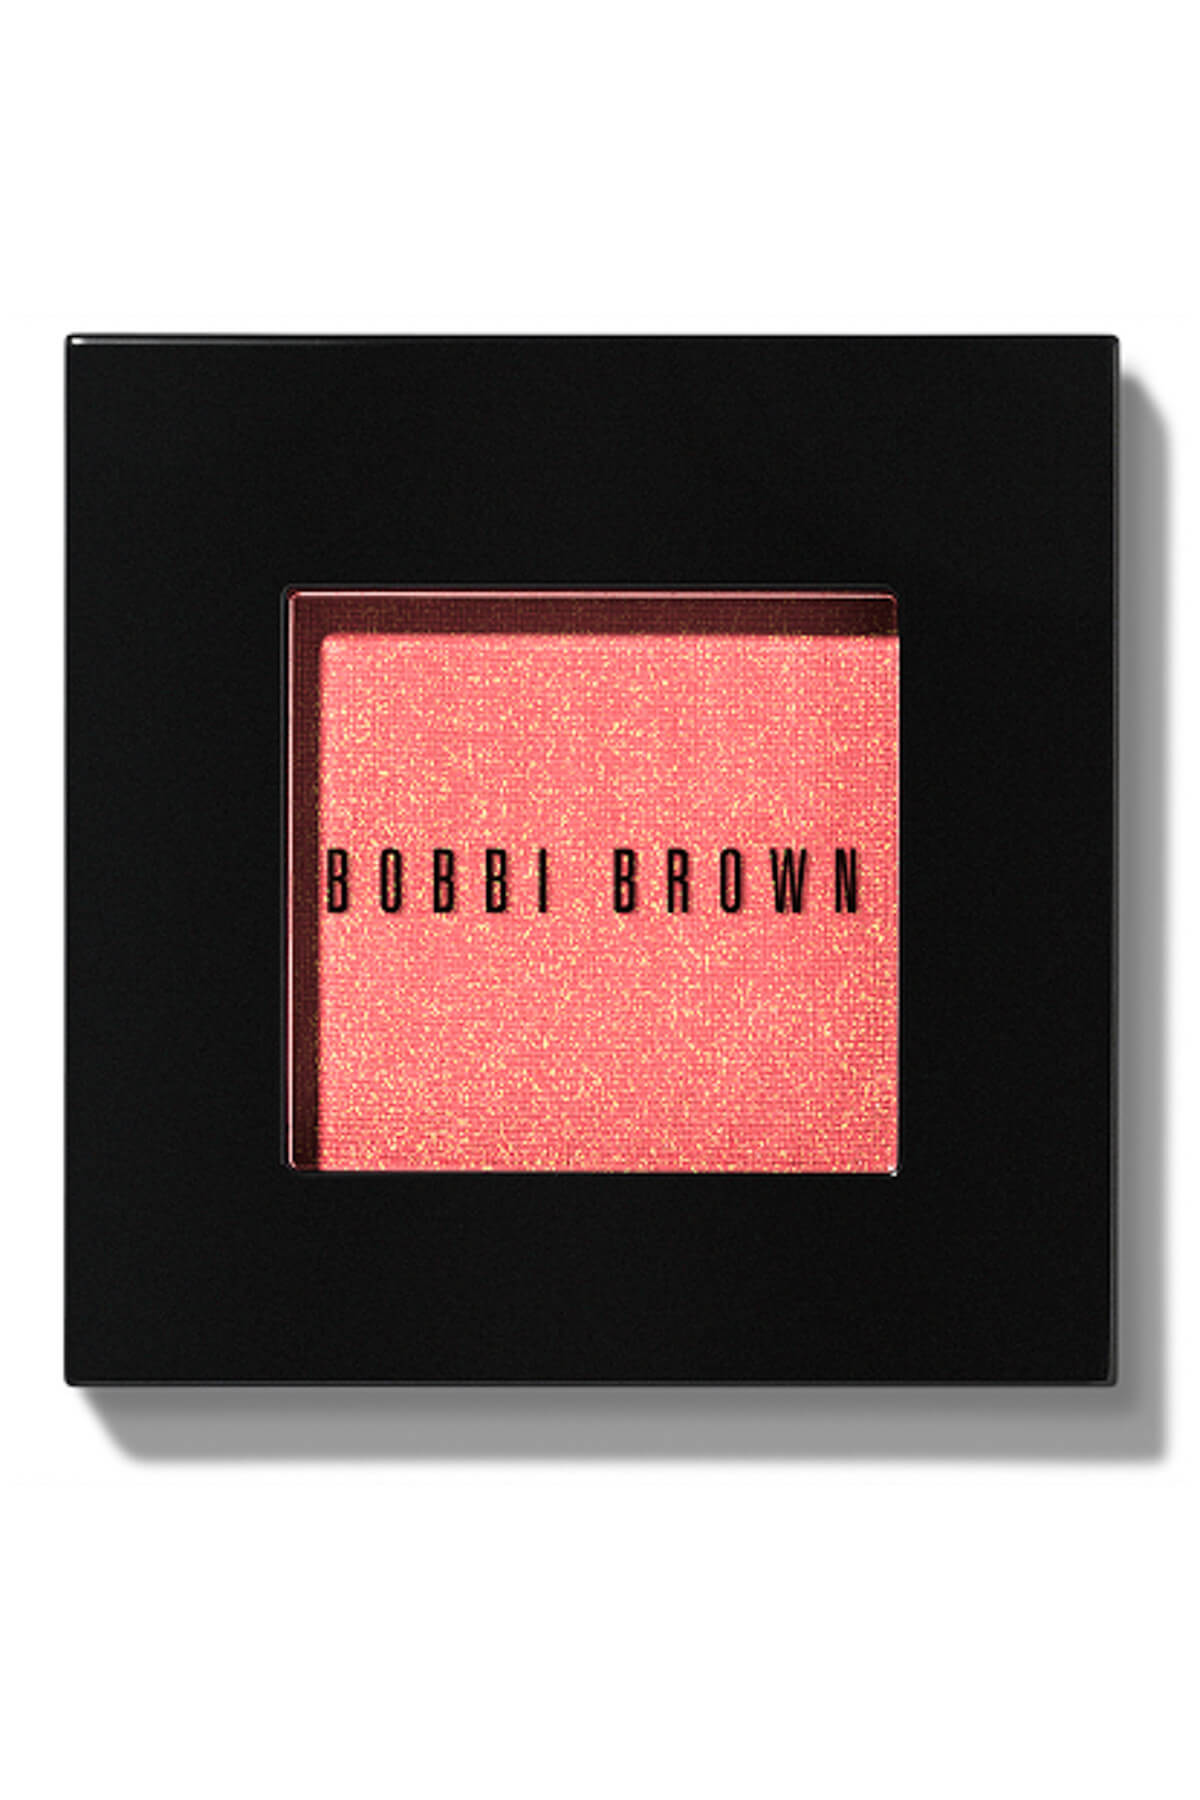 BOBBI BROWN Allık - Shimmer Blush Coral 4 g 716170059860 1